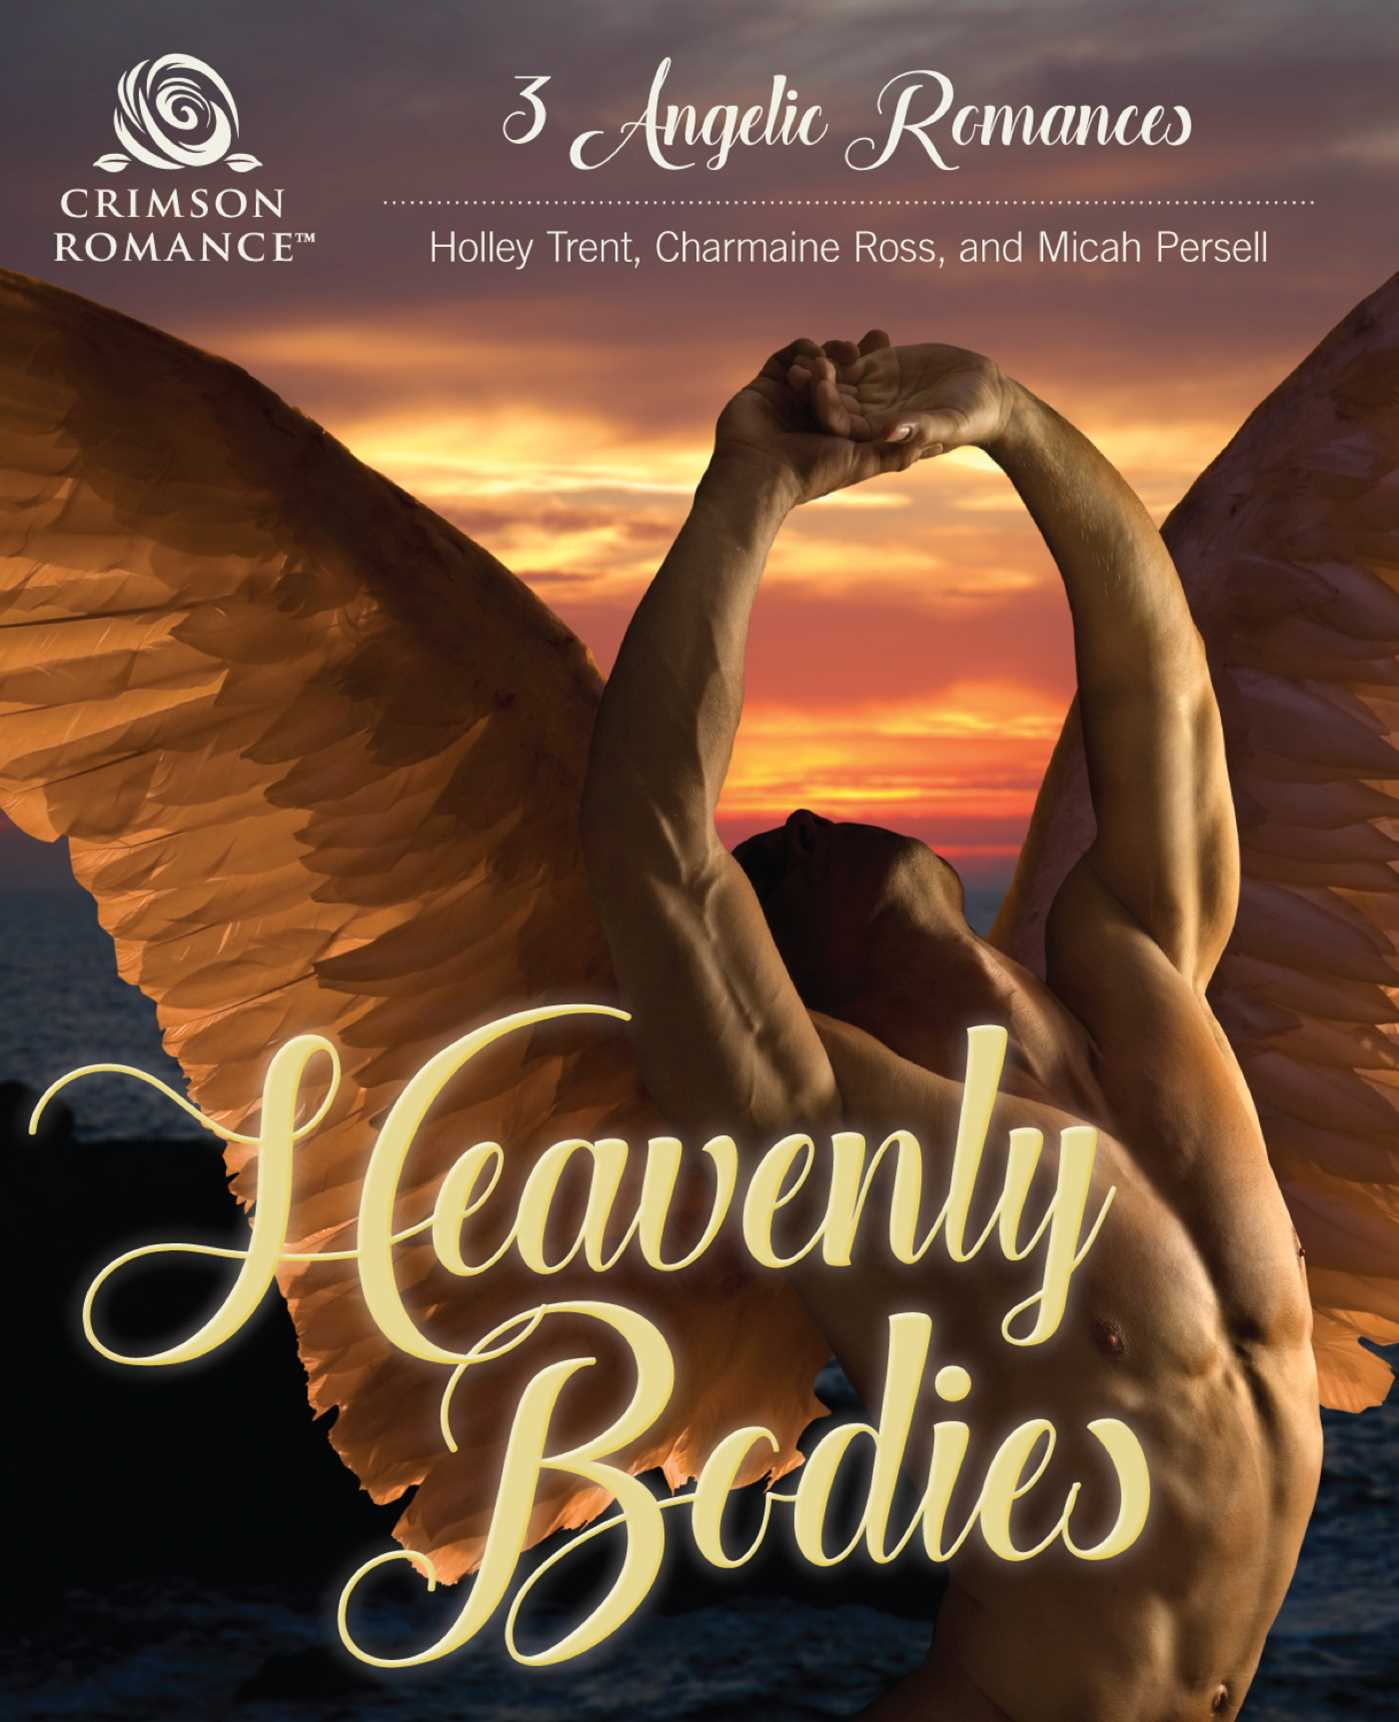 Heavenly bodies 9781507200476 hr